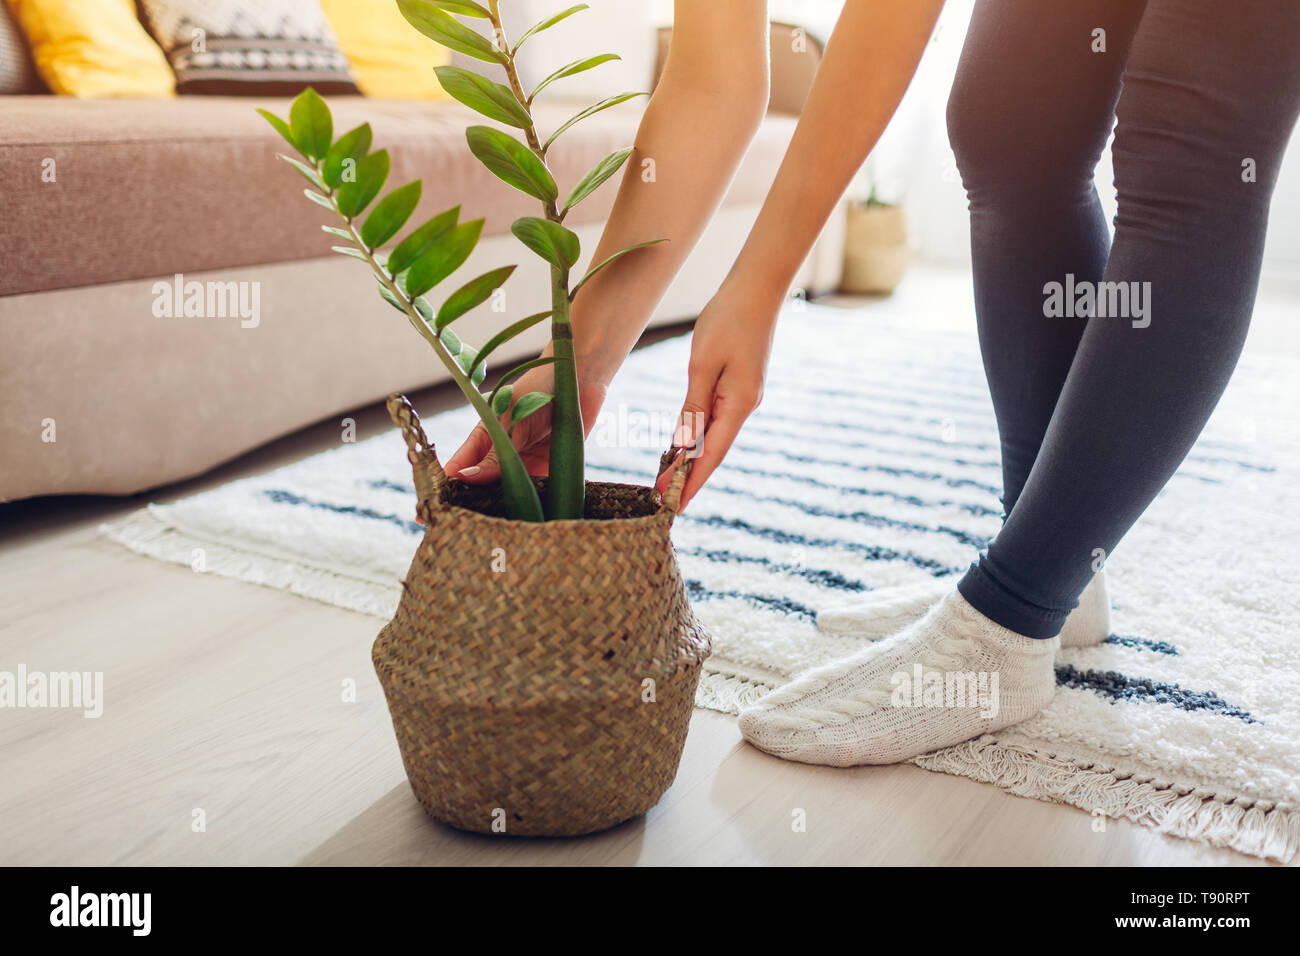 Young Woman Puts Zz Plant In Straw Basket Interior Decor Of Living Room Stock Photo Alamy